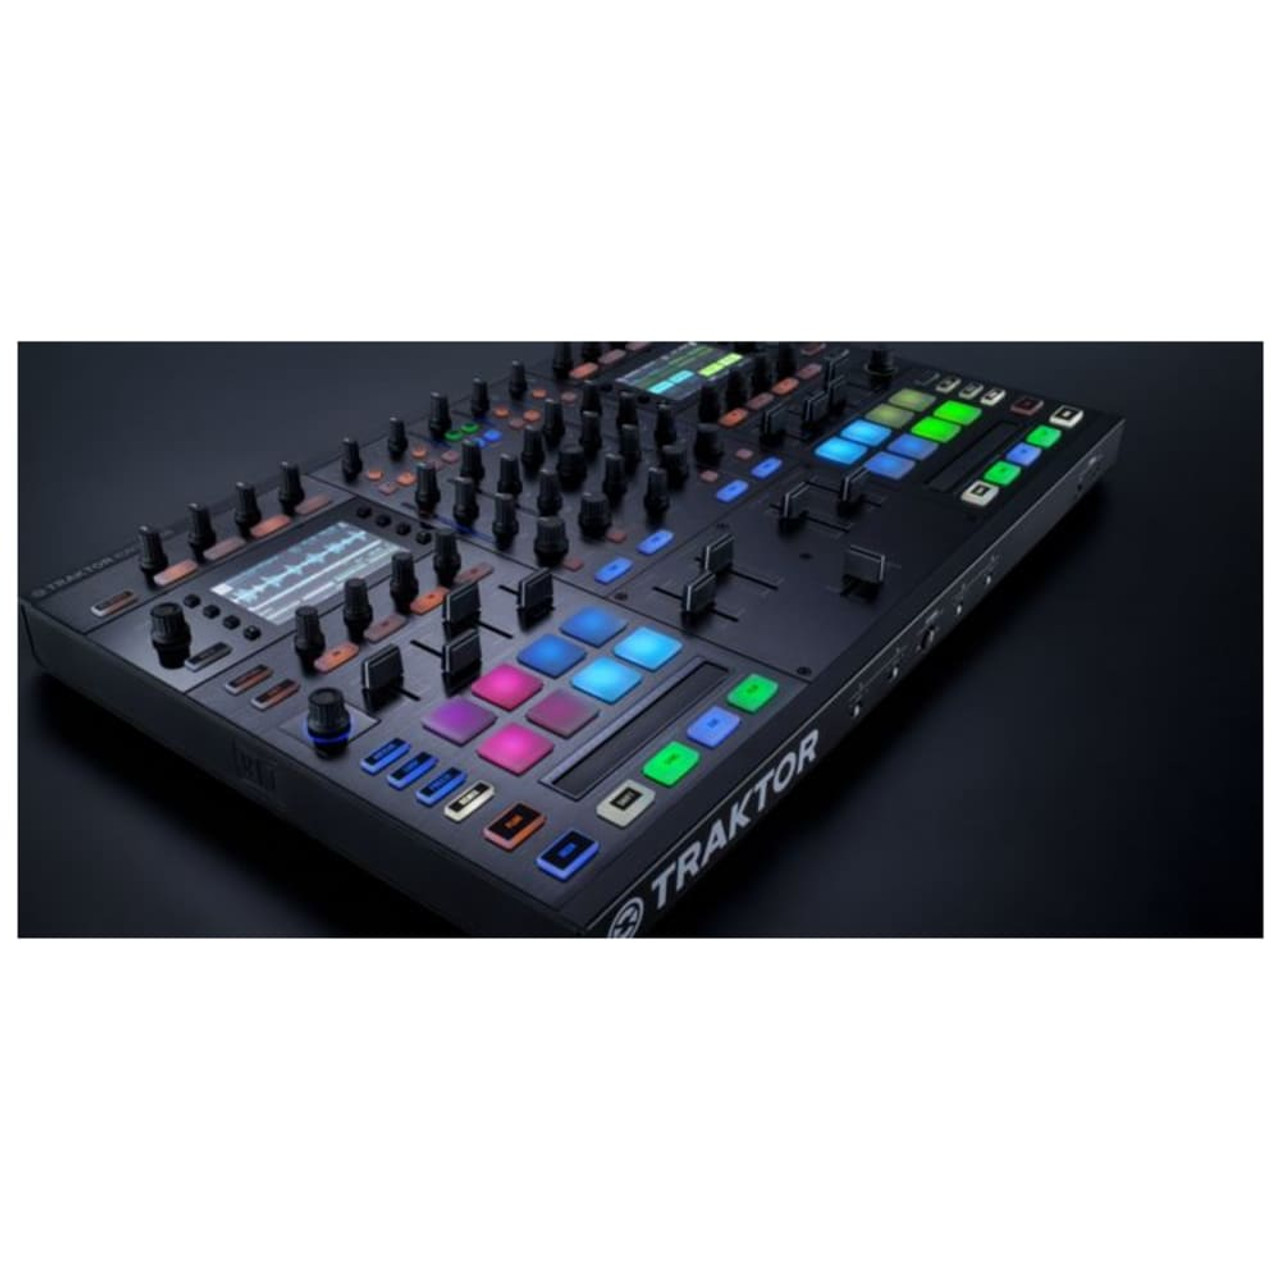 Stand for Native Instruments Traktor Kontrol S8